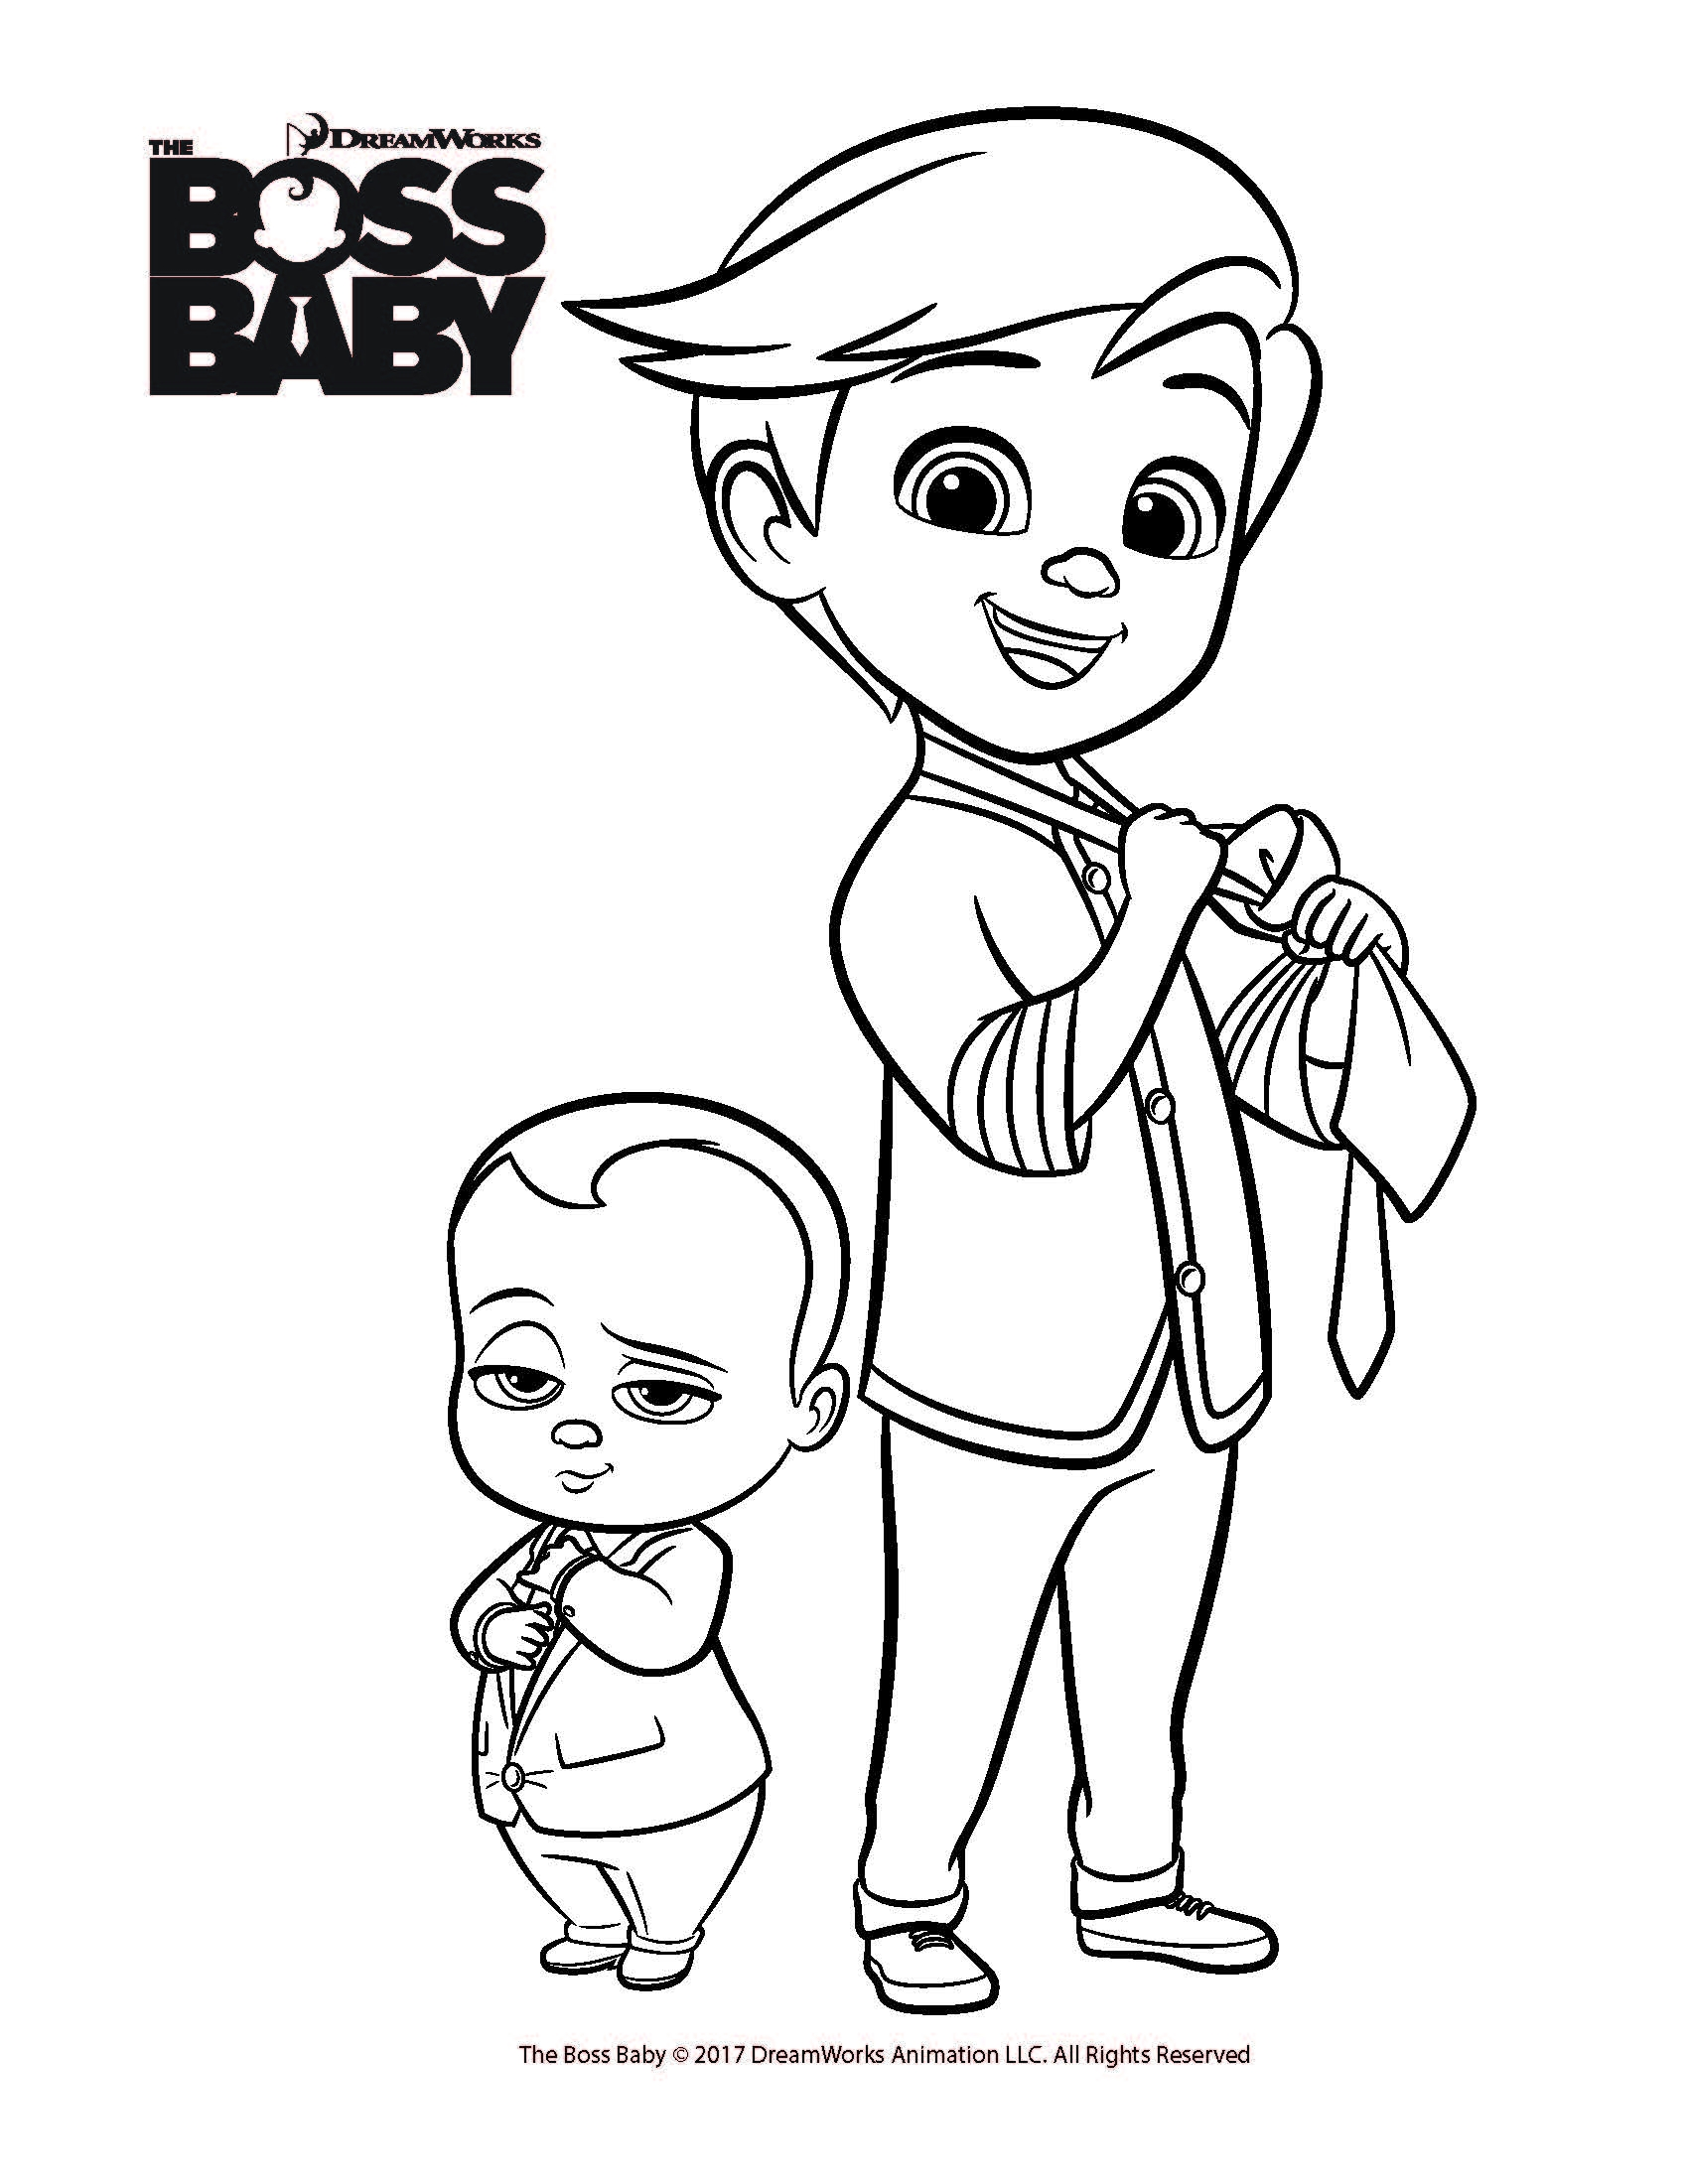 boss baby printable coloring pages the boss baby coloring pages to download and print for pages printable baby boss coloring